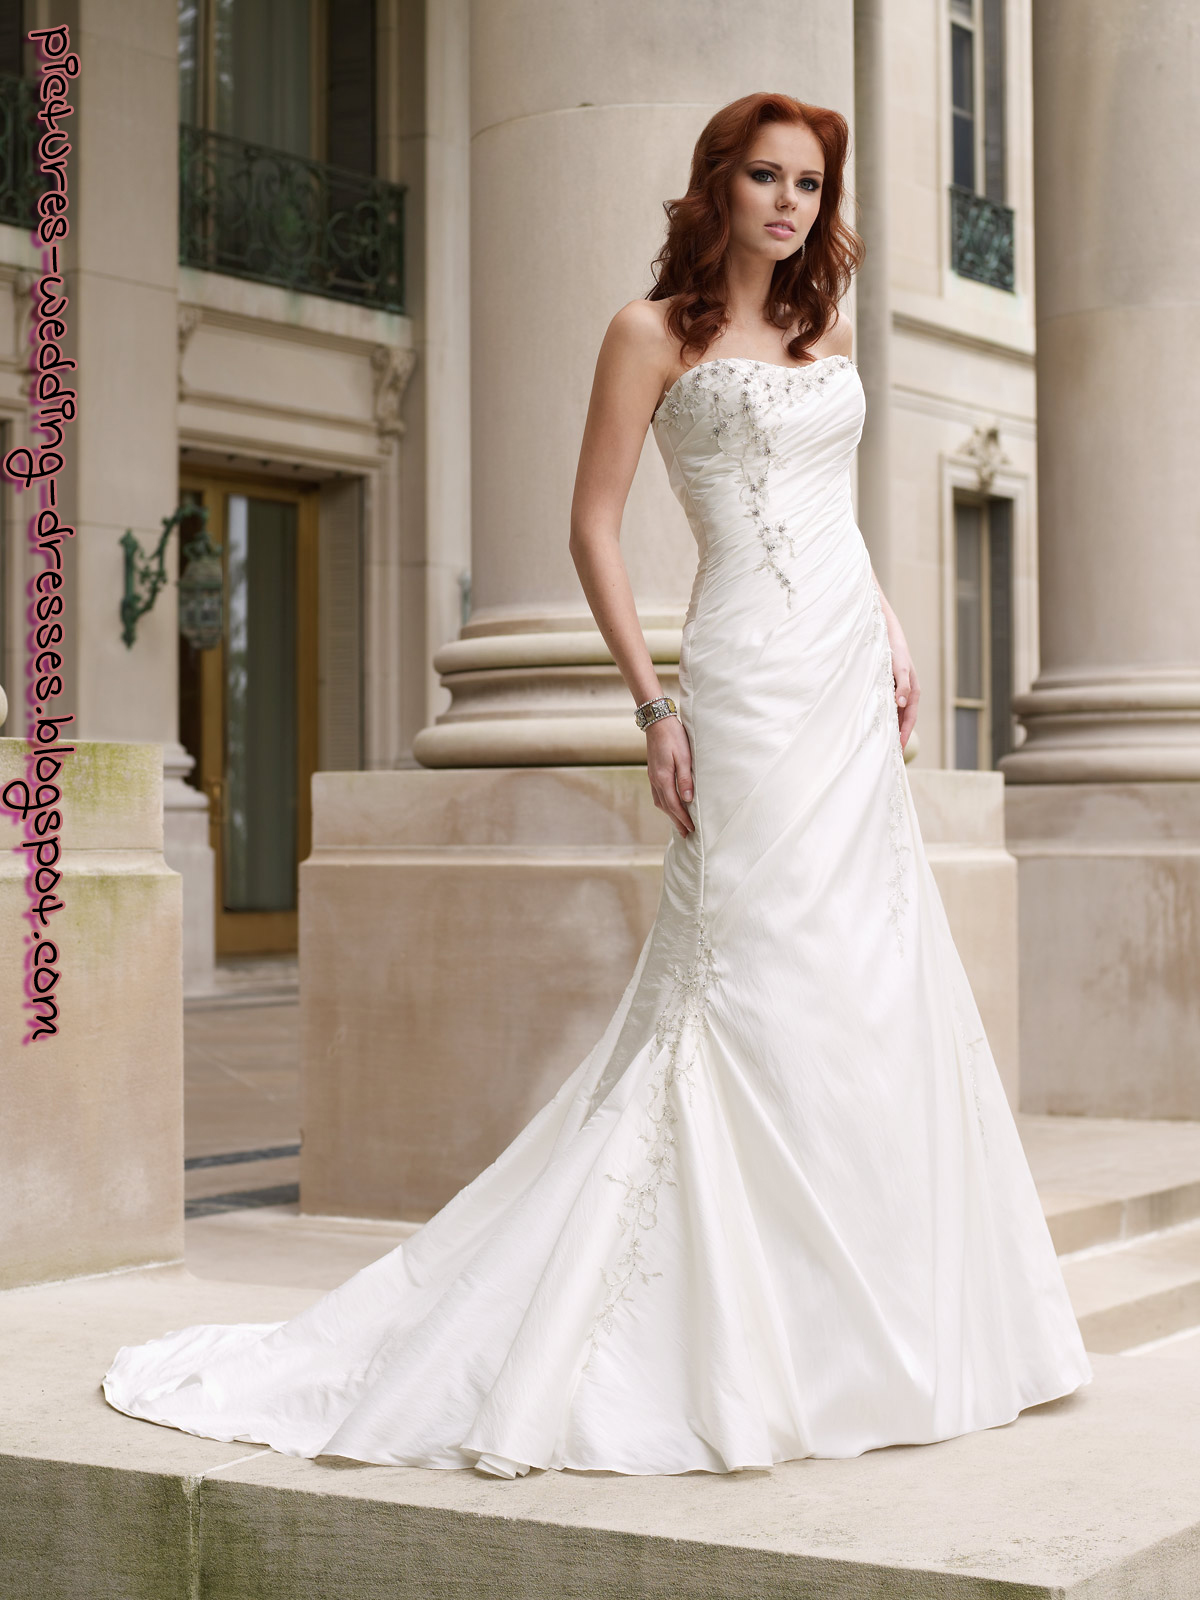 photos wedding dresses photos formal bridal gowns and